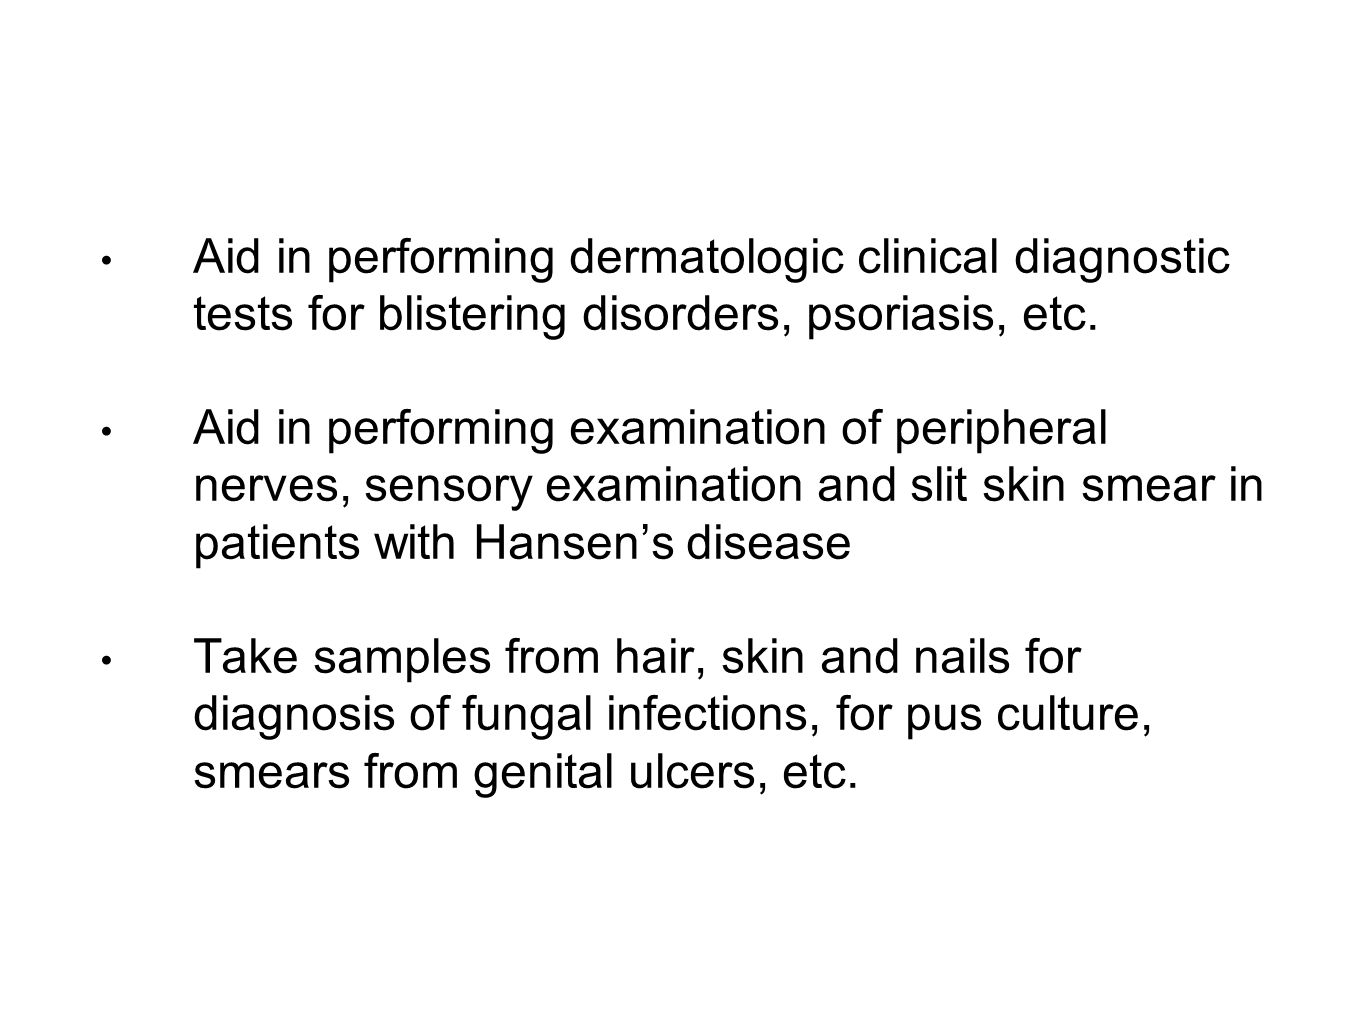 Aid in performing dermatologic clinical diagnostic tests for blistering disorders, psoriasis, etc.